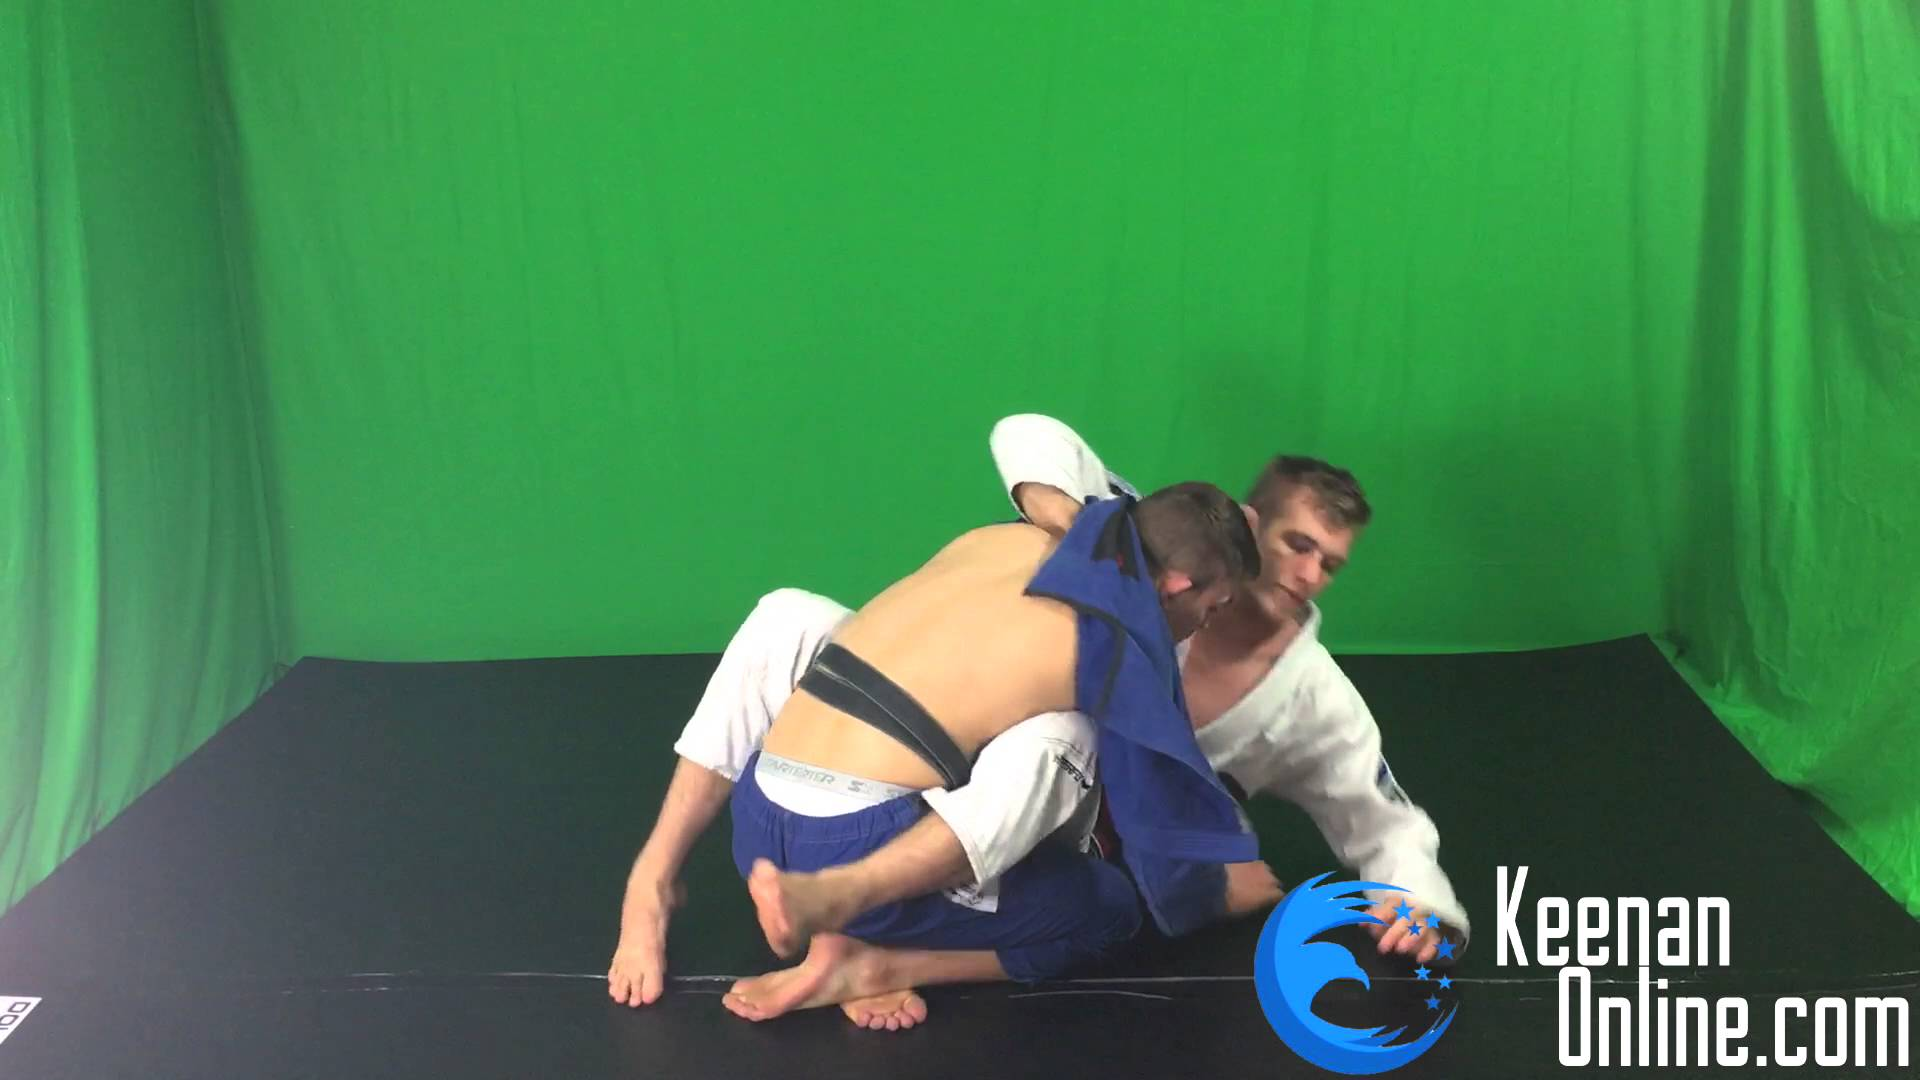 Keenan Cornelius – The Force Choke